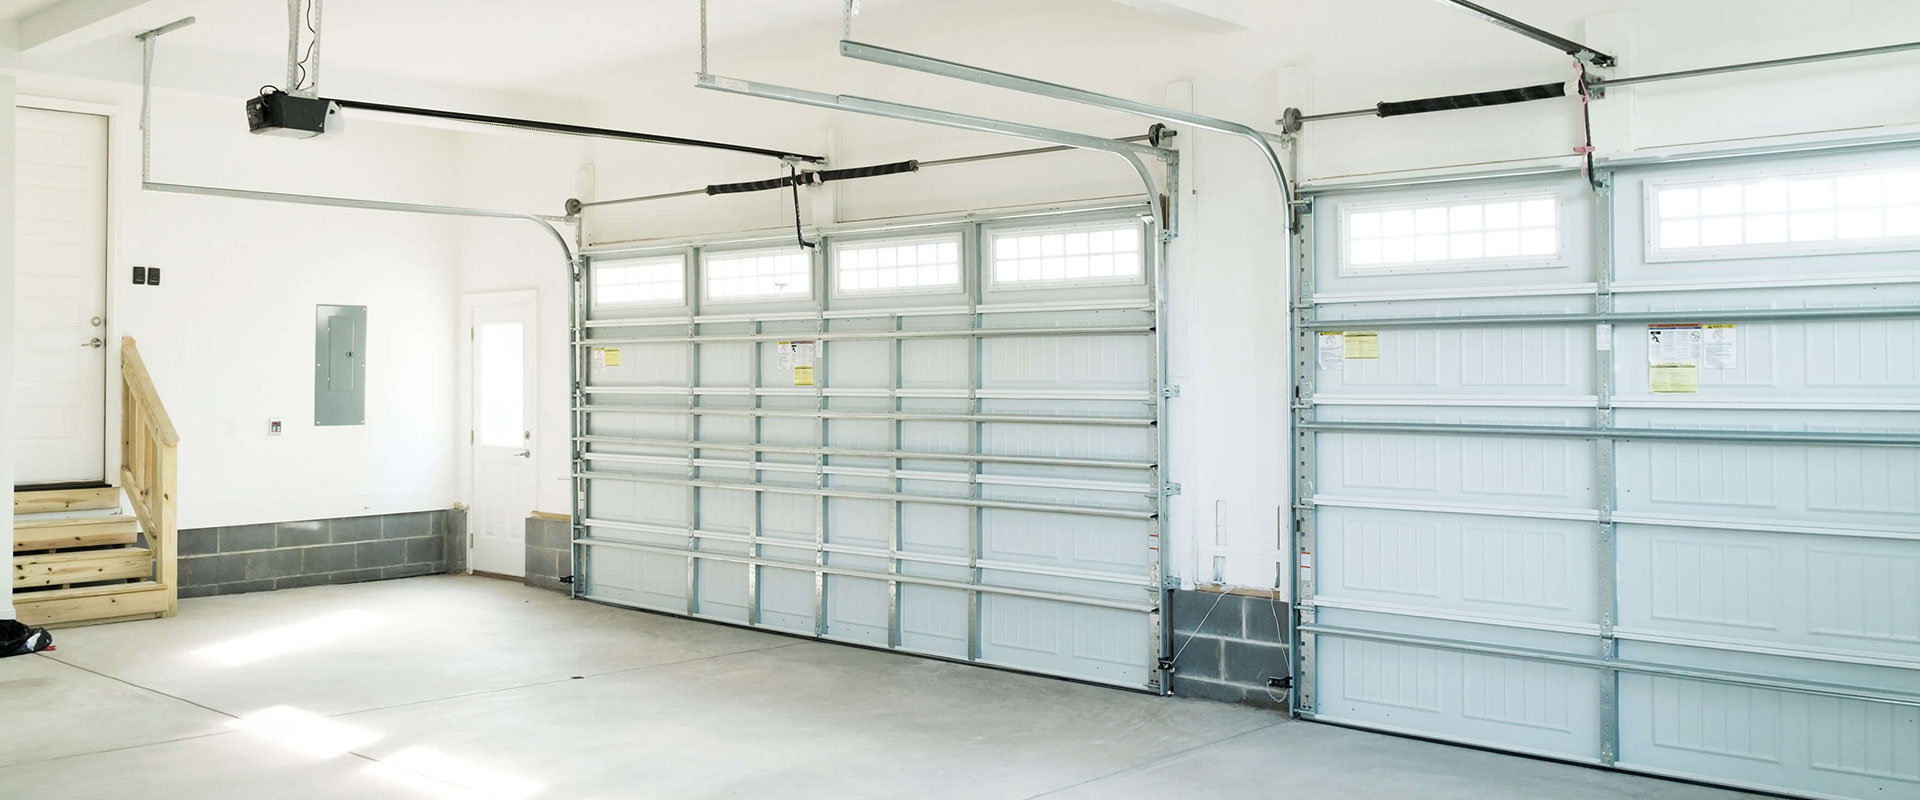 garage door repair nj, garage door installation nj, commercial garage door repair nj, residential garage door repair, garage door opener installation nj, loading dock door nj, loading dock repair, garage door resizing, garage door repair nj, garage door repair south jersey, garage door repair new jersey, all day garage repair nj